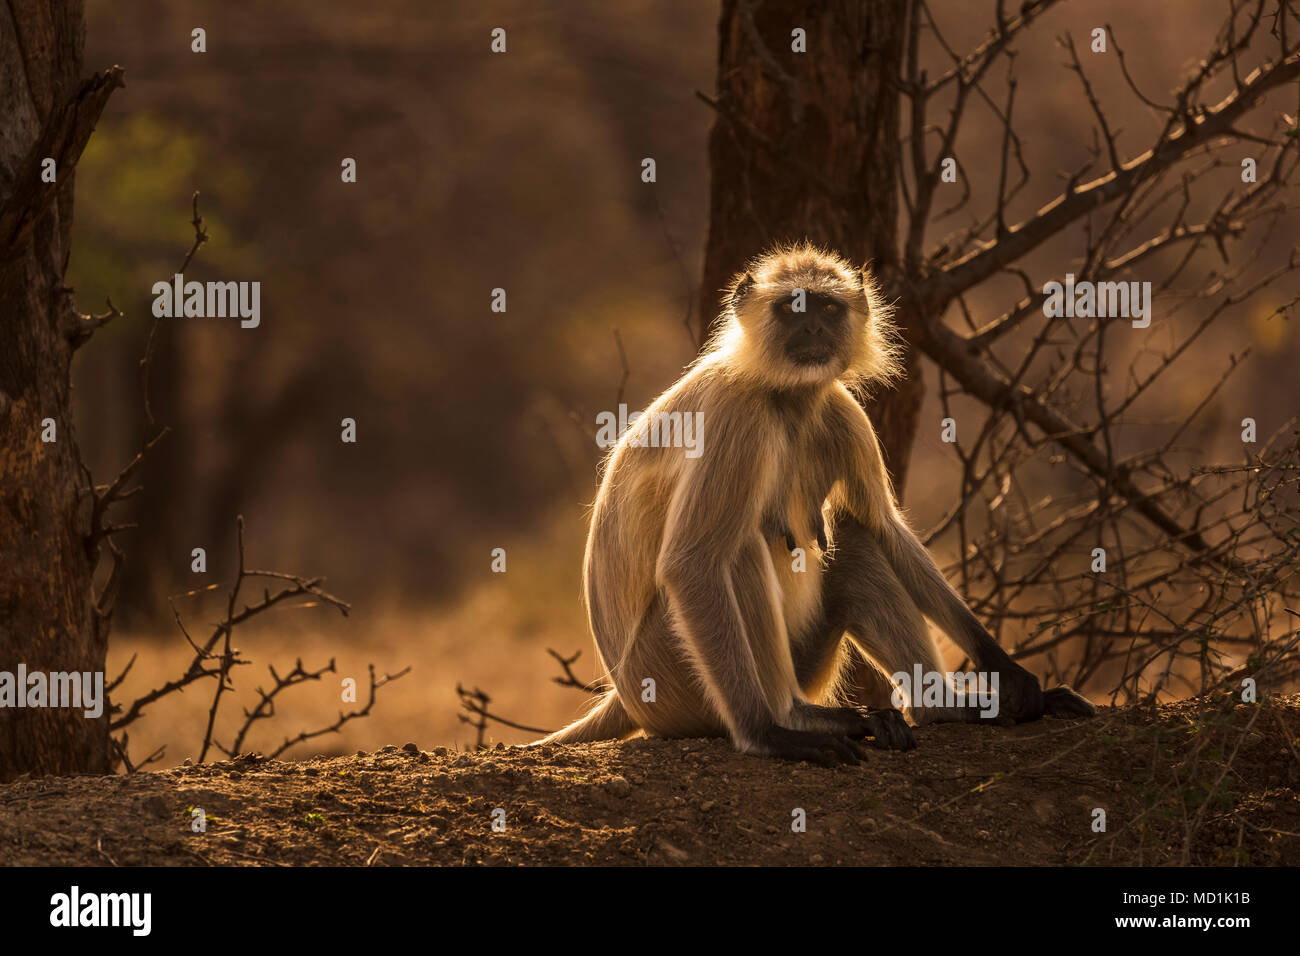 Backlit grey langur (Semnopithecus entellus), an old world monkey, sitting in woodland in Ranthambore National Park, Rajasthan, northern India - Stock Image